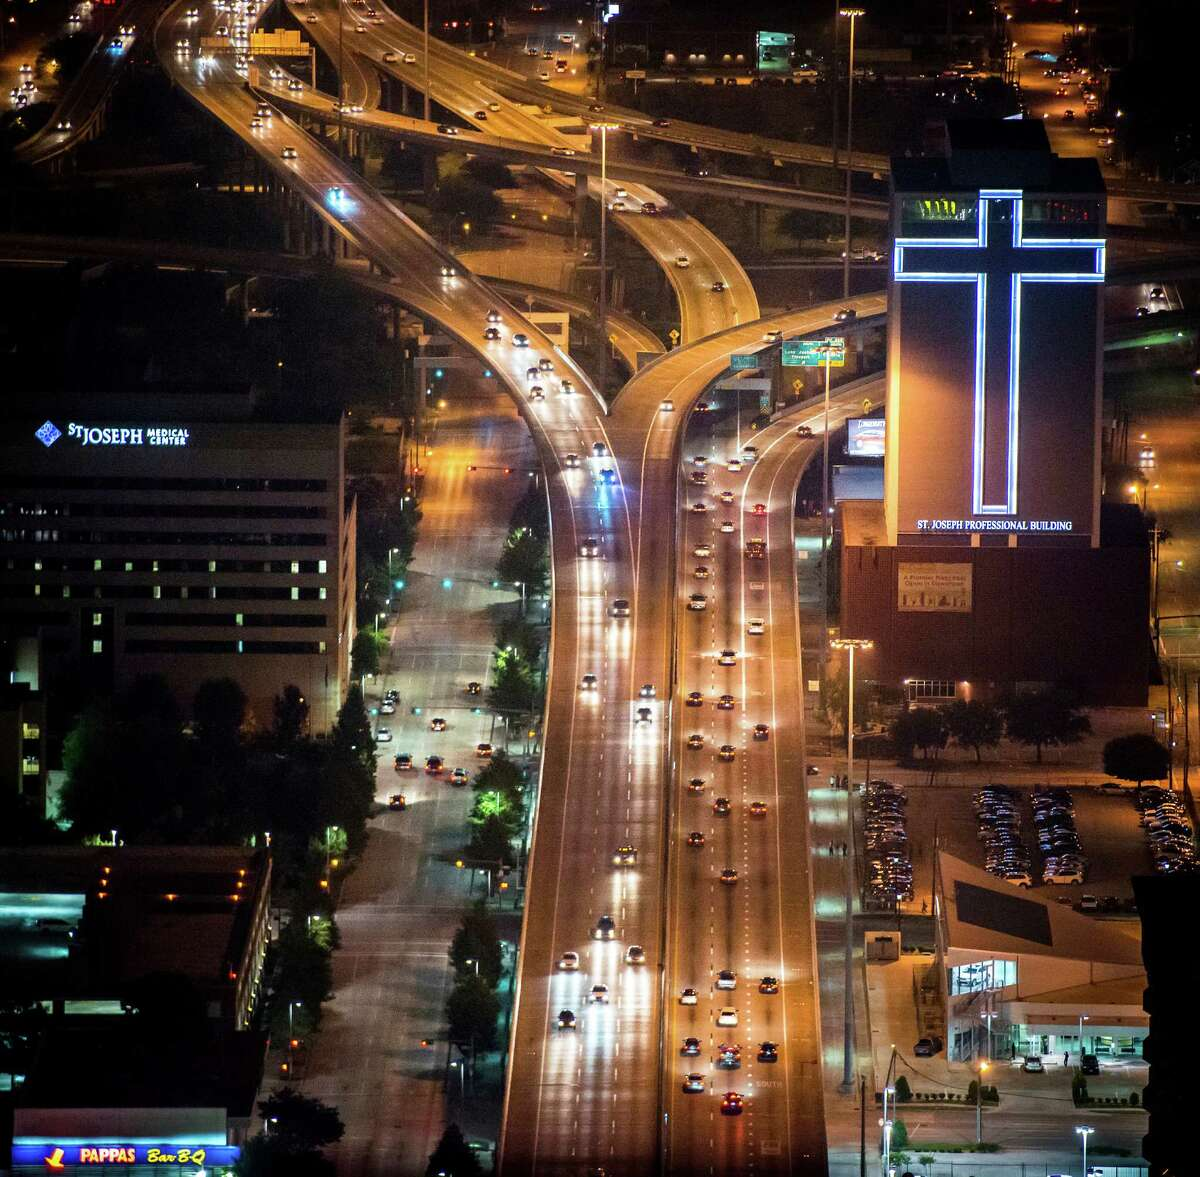 Pierce Elevated cuts through downtown between the St. Joseph Medical Center and its Professional Building. TxDOT has three options for widening I-45 near downtown.